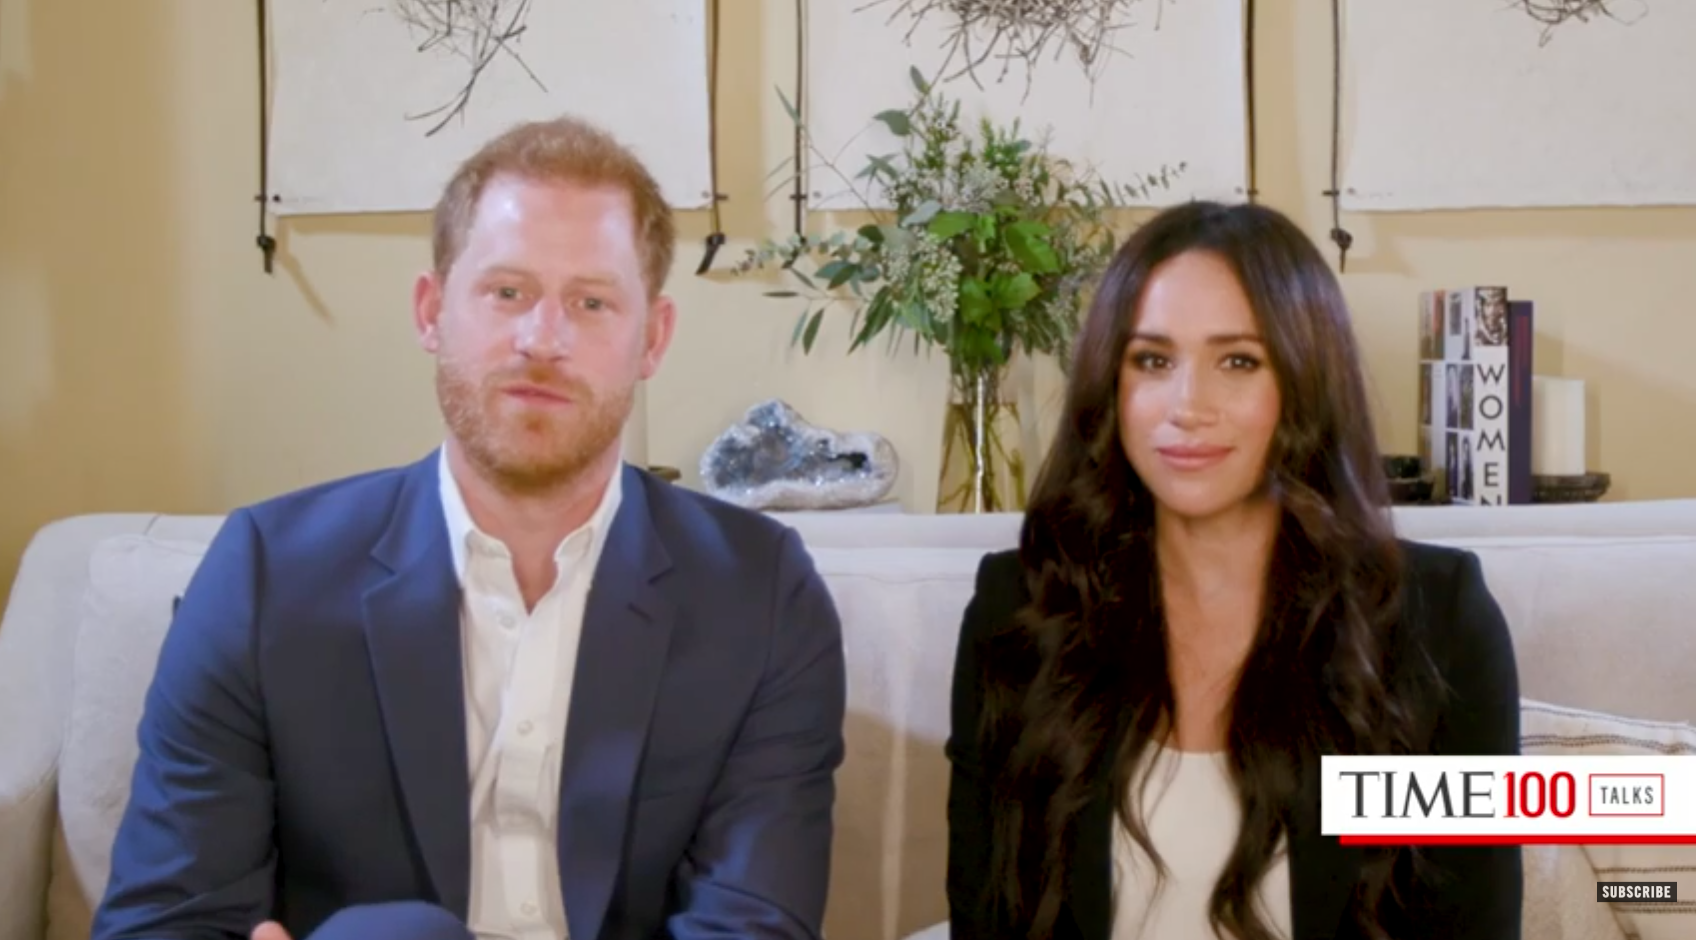 Meghan Markle and Prince Harry say they are 'embracing every moment' with Archie in lockdown